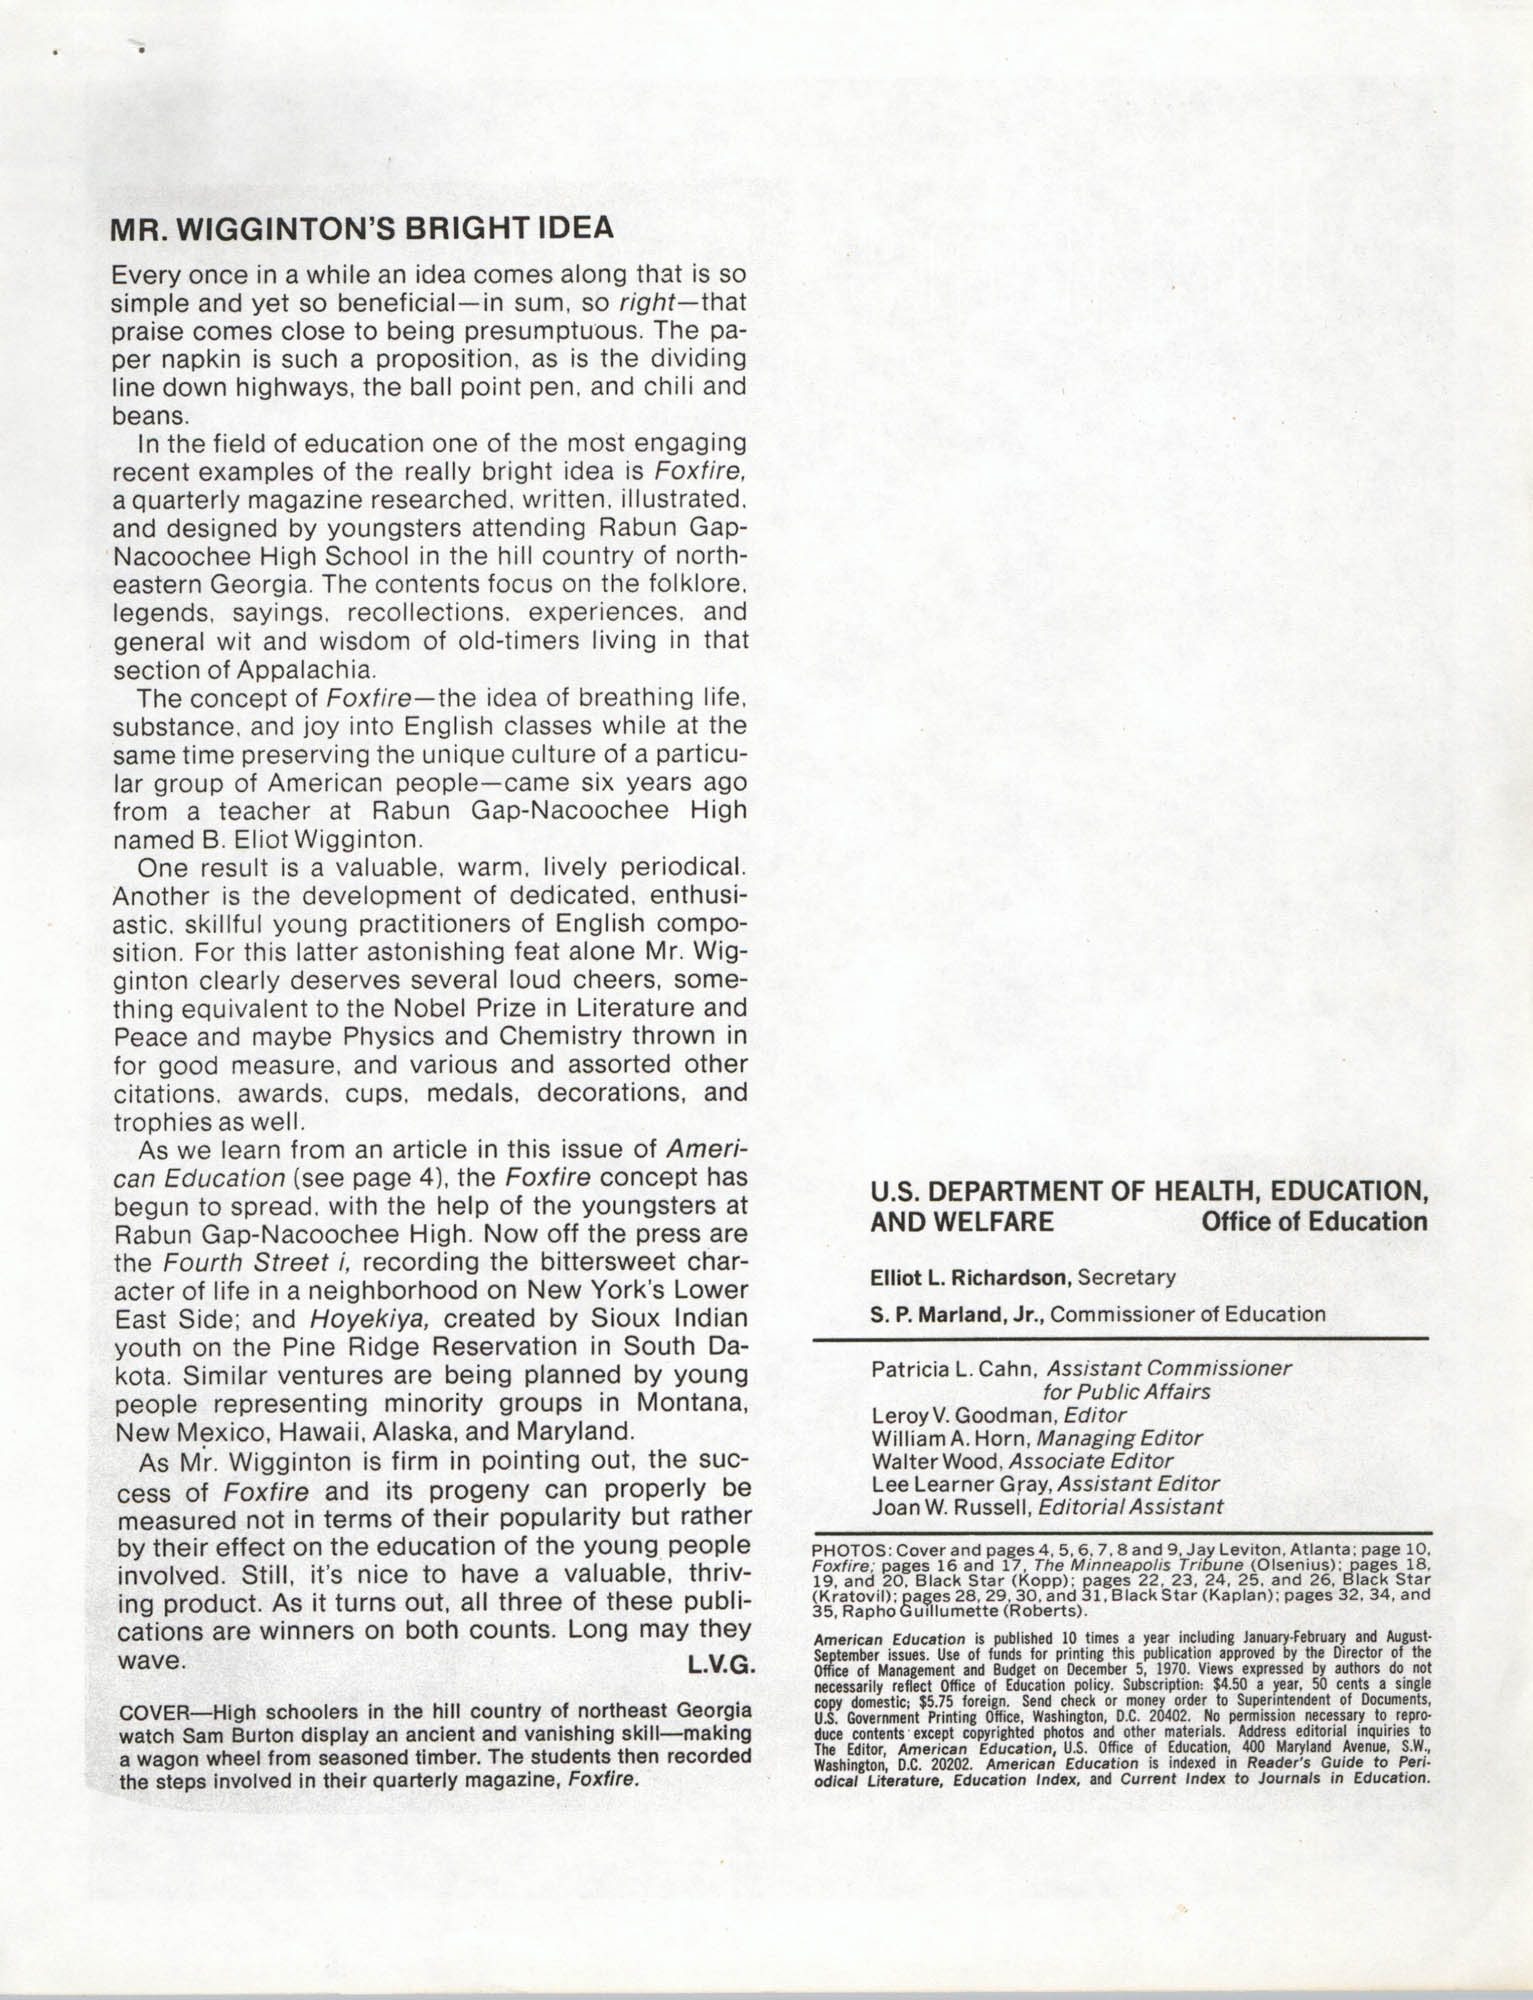 American Education, July 1972, Page 1